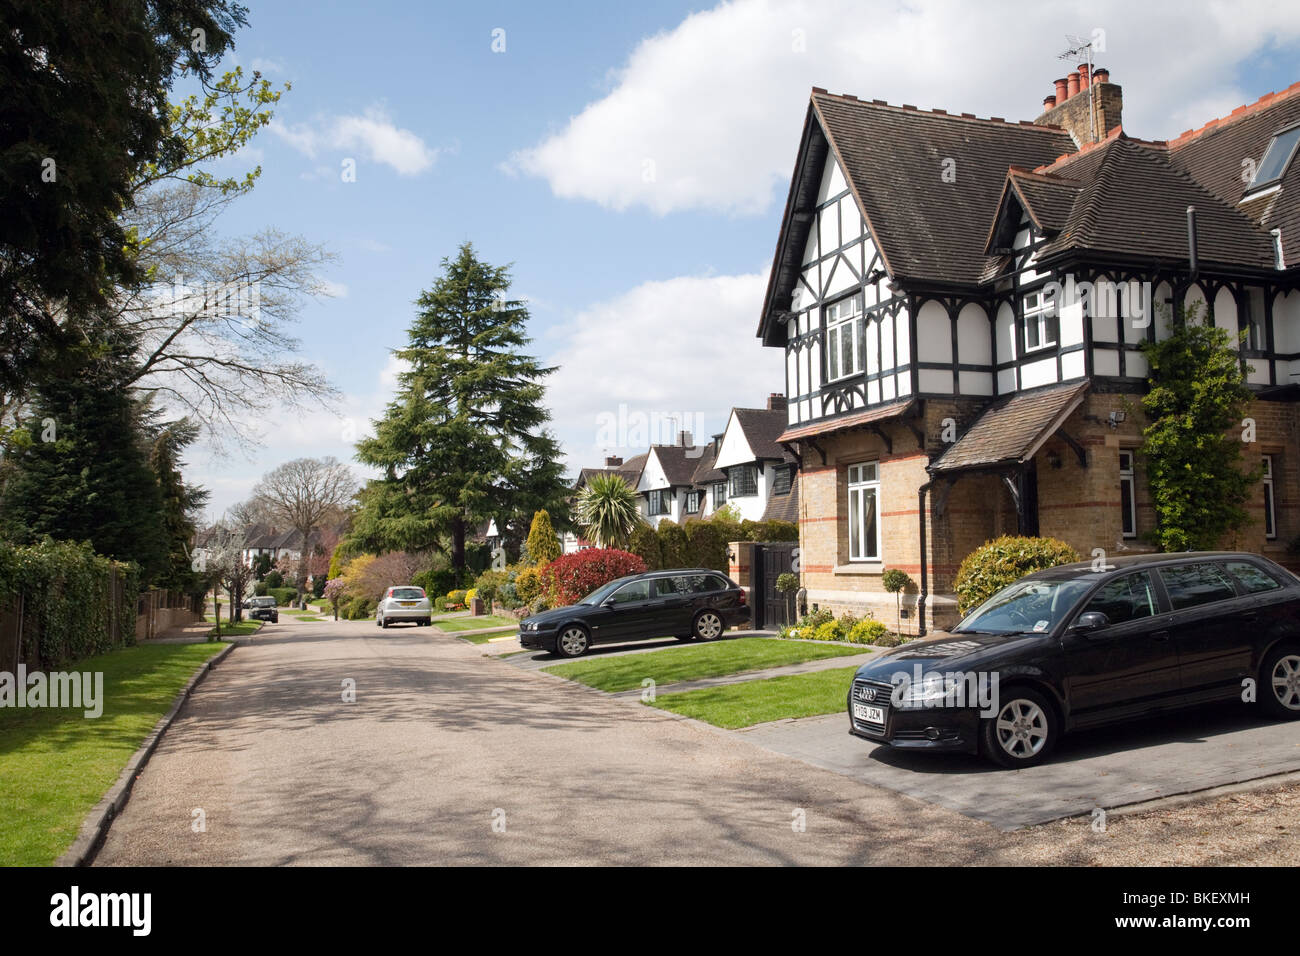 Incredible Expensive Houses On A Private Road Chislehurst South East Download Free Architecture Designs Lectubocepmadebymaigaardcom